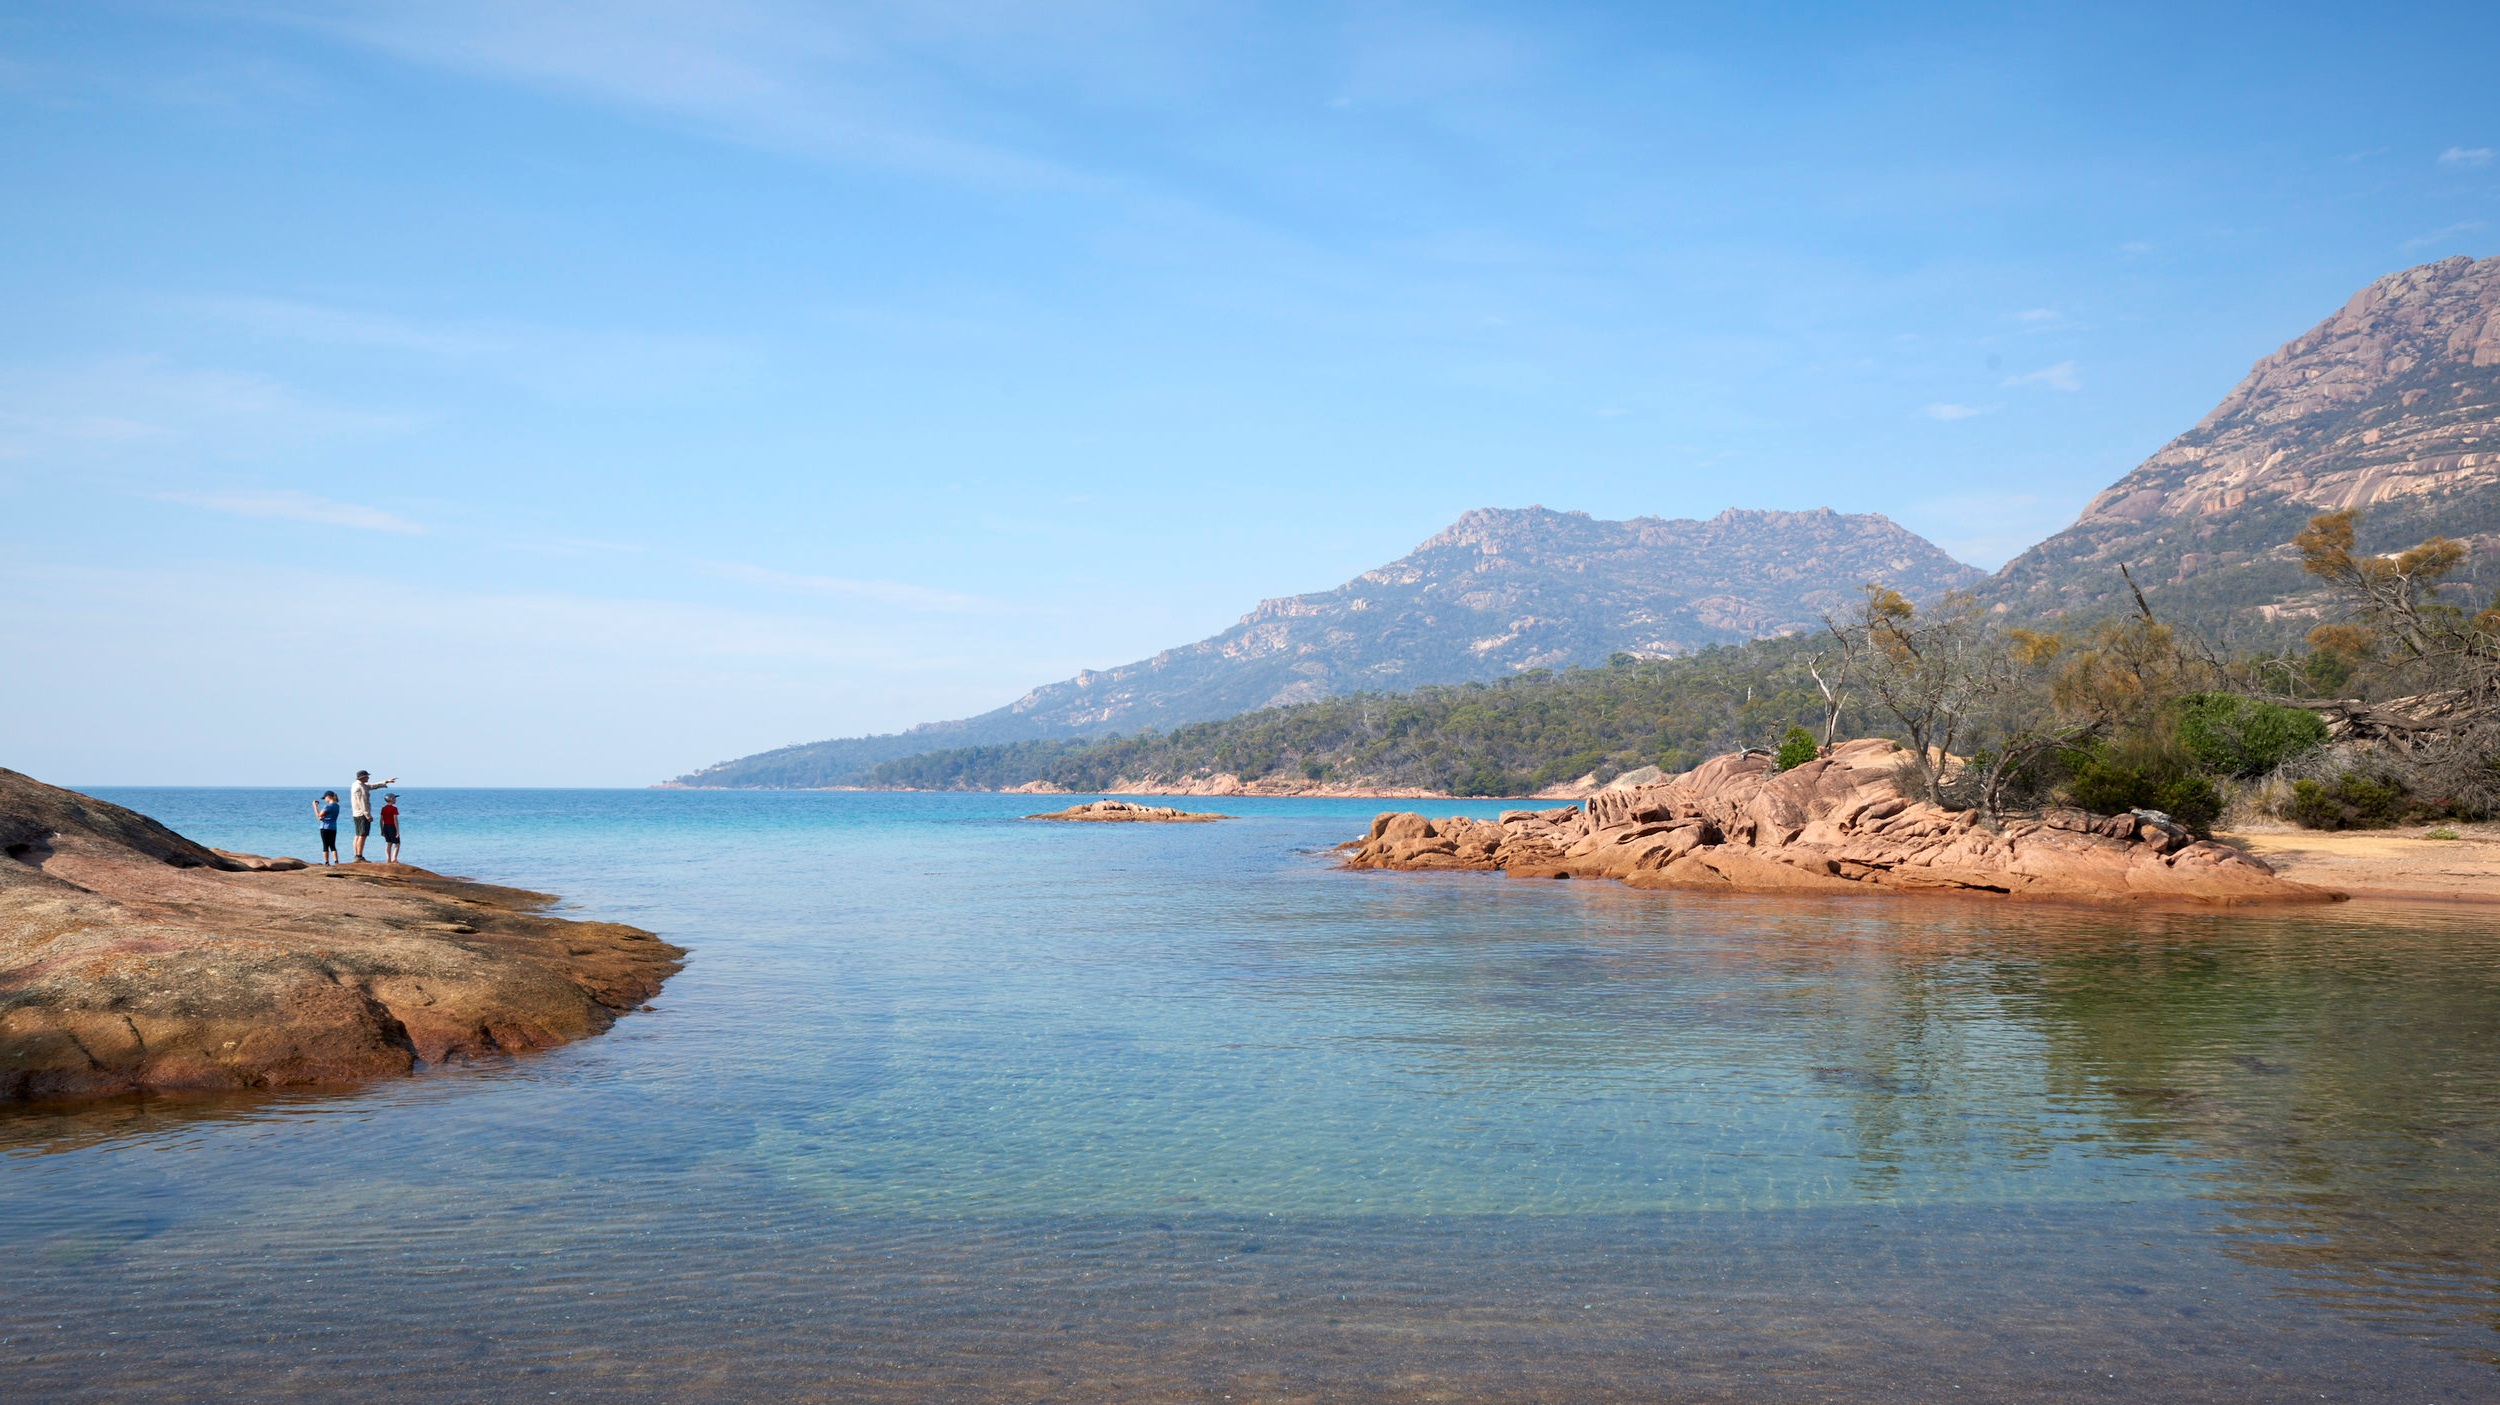 Freycinet Family Land & Sea Adventure - Hike and Paddle your way across and around Tasmania's incredible Freycinet Peninsula with your family over 4 days.See Details